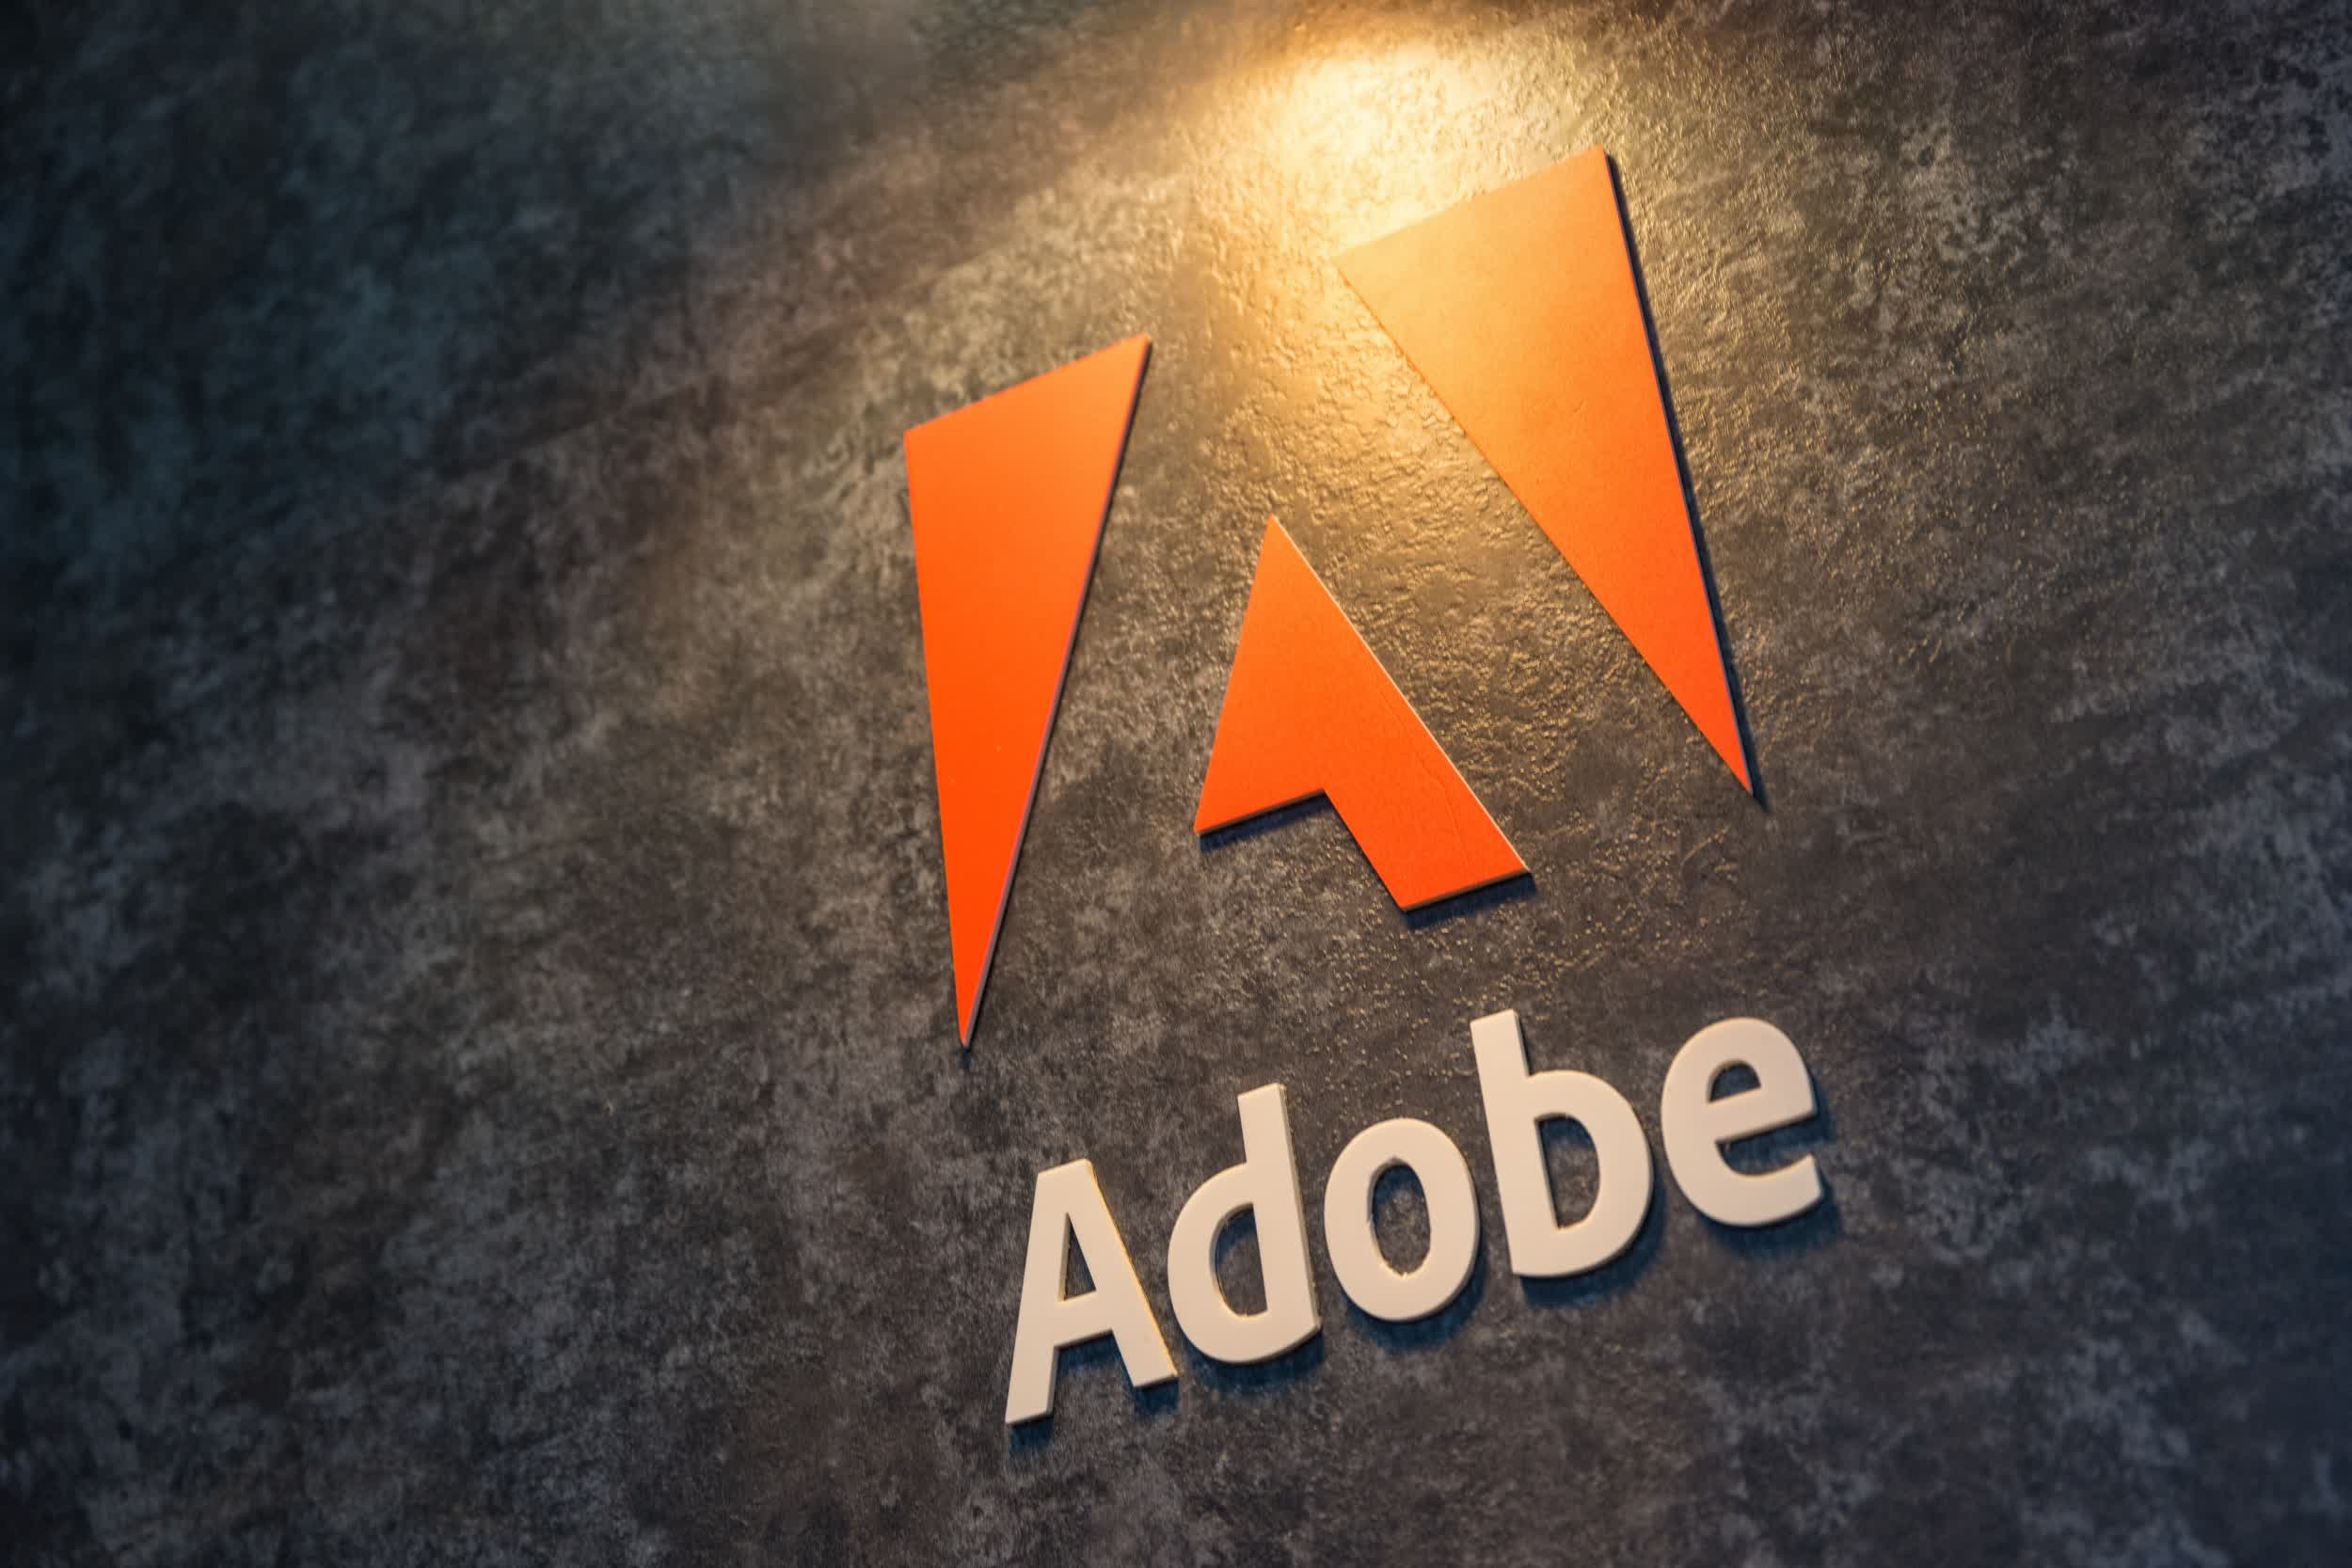 Adobe co-founder Charles Geschke has died at age 81